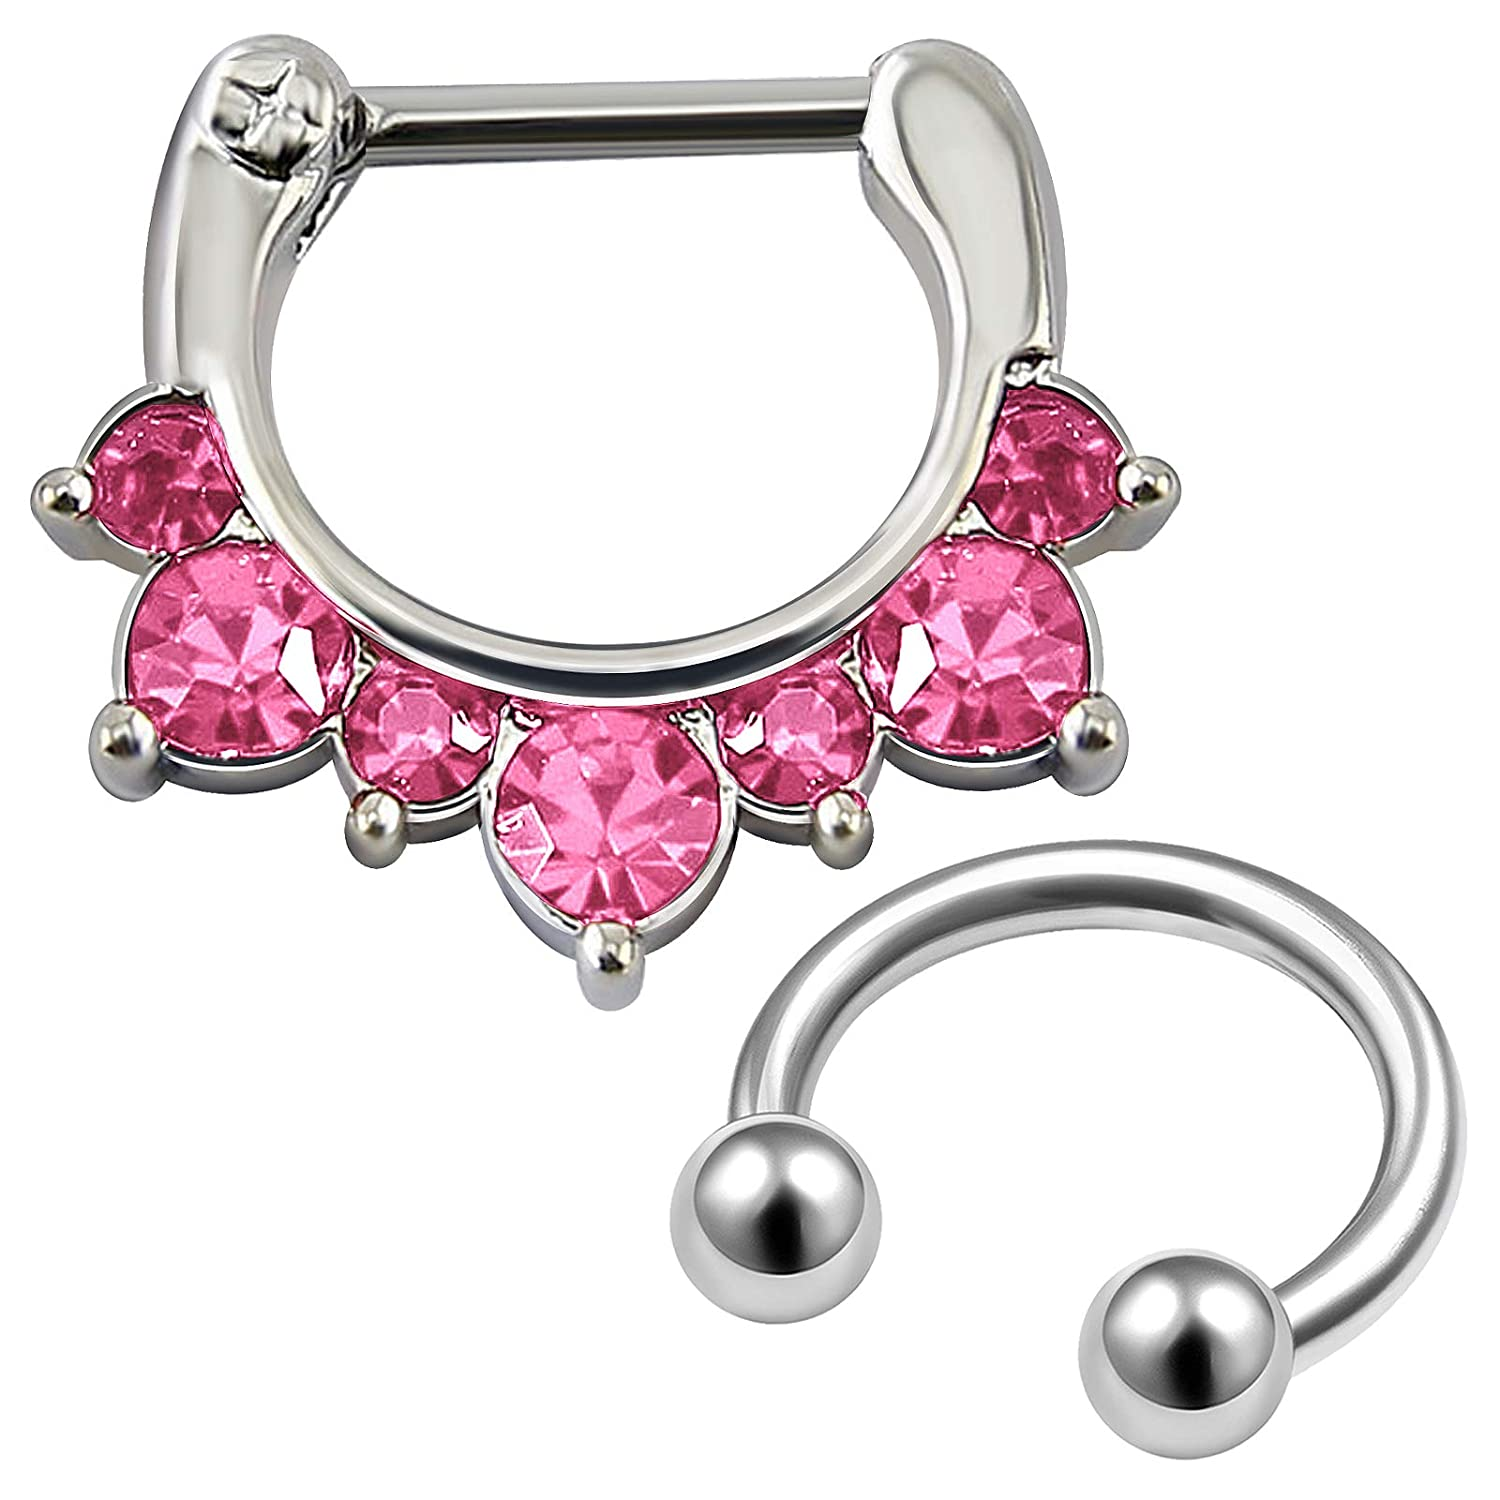 MATIGA 2Pcs Steel 16g Septum Nose Hoop Horseshoe Piercing Jewelry Helix Tragus Cartilage Eyebrow Rook Crystal 3mm Ball More Choices